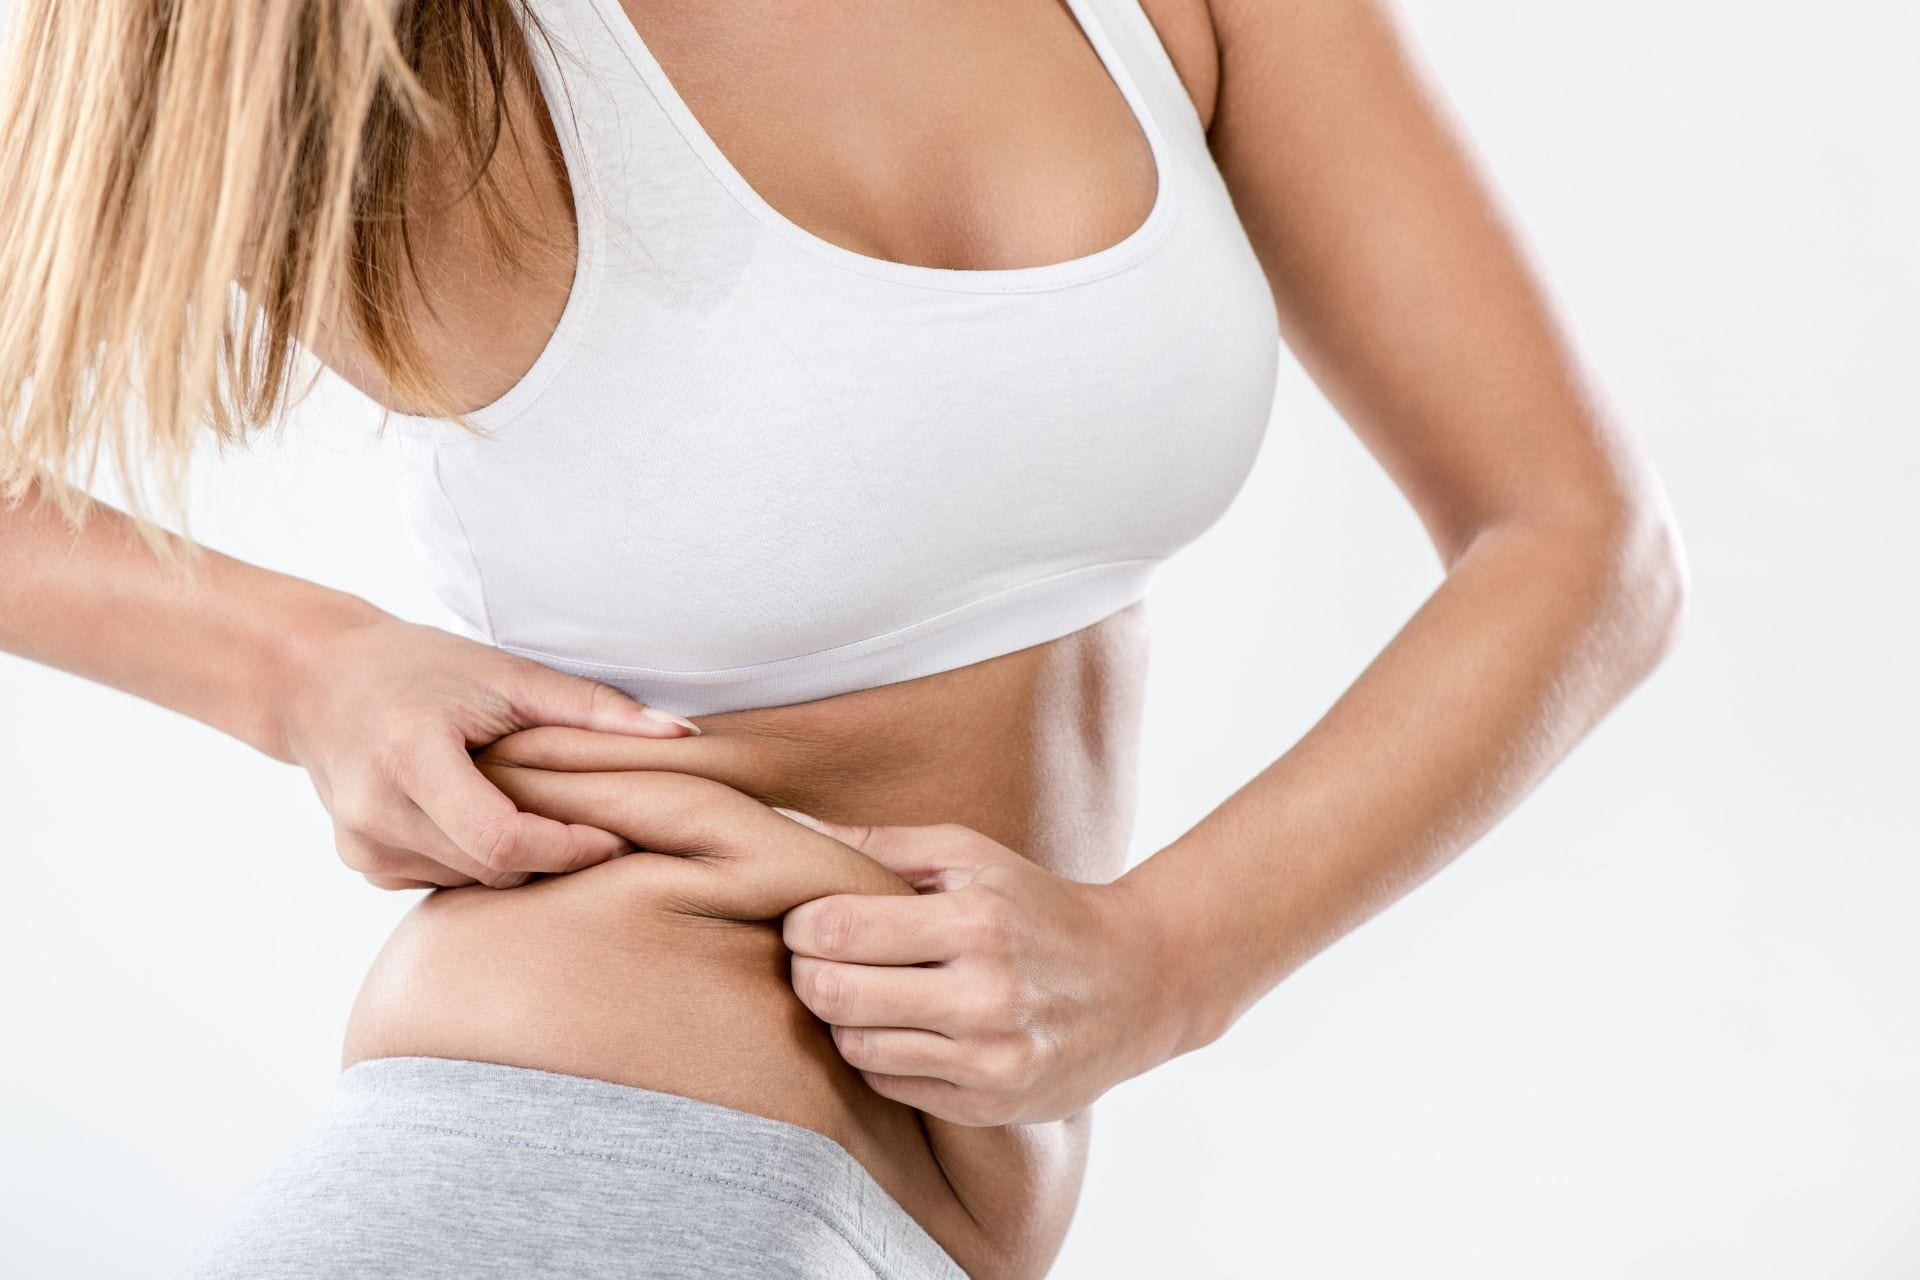 non-invasive fat removal with coolsculpting 1920x1280